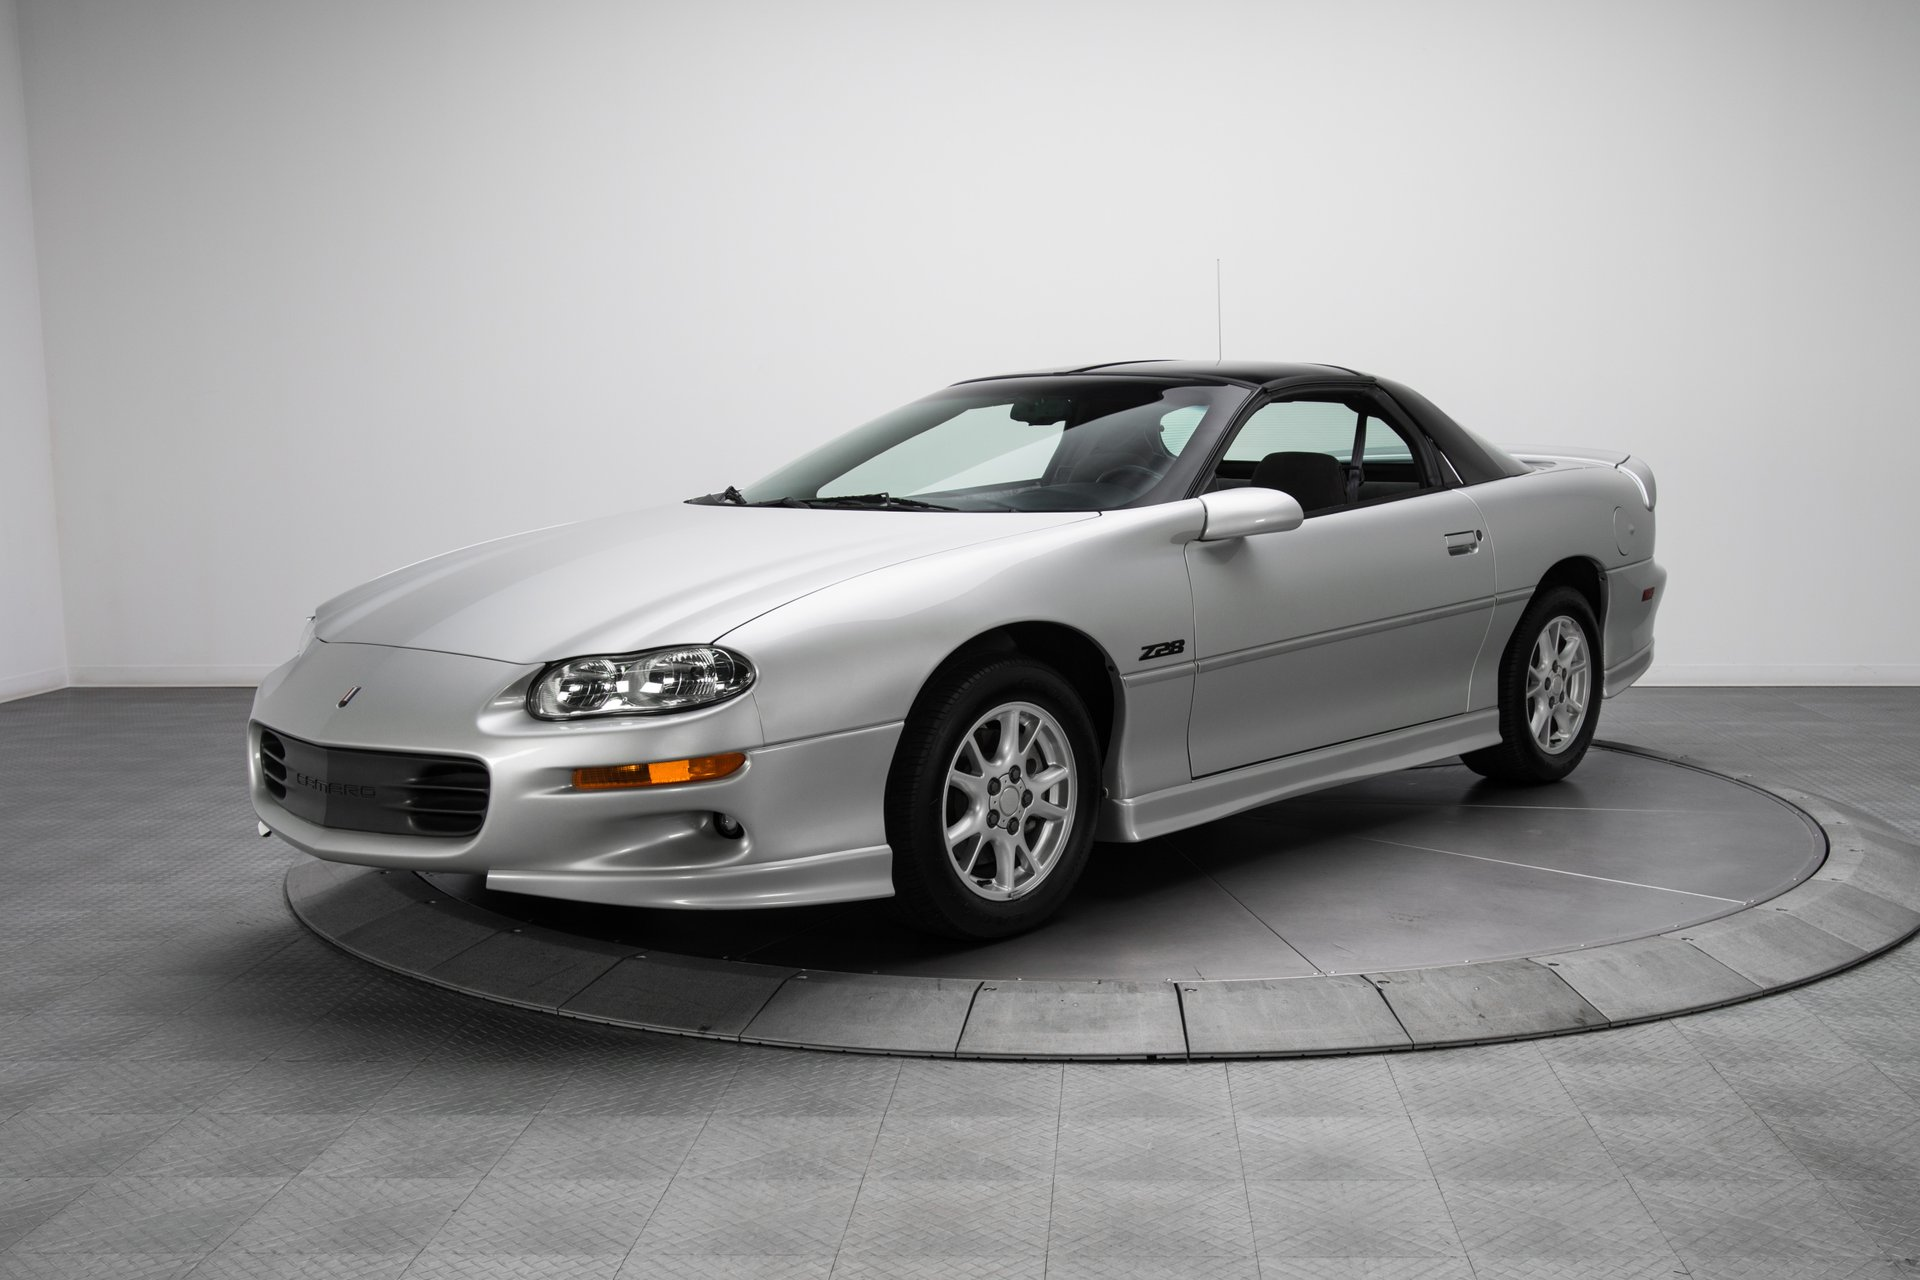 hight resolution of for sale 2000 chevrolet camaro for sale 2000 chevrolet camaro